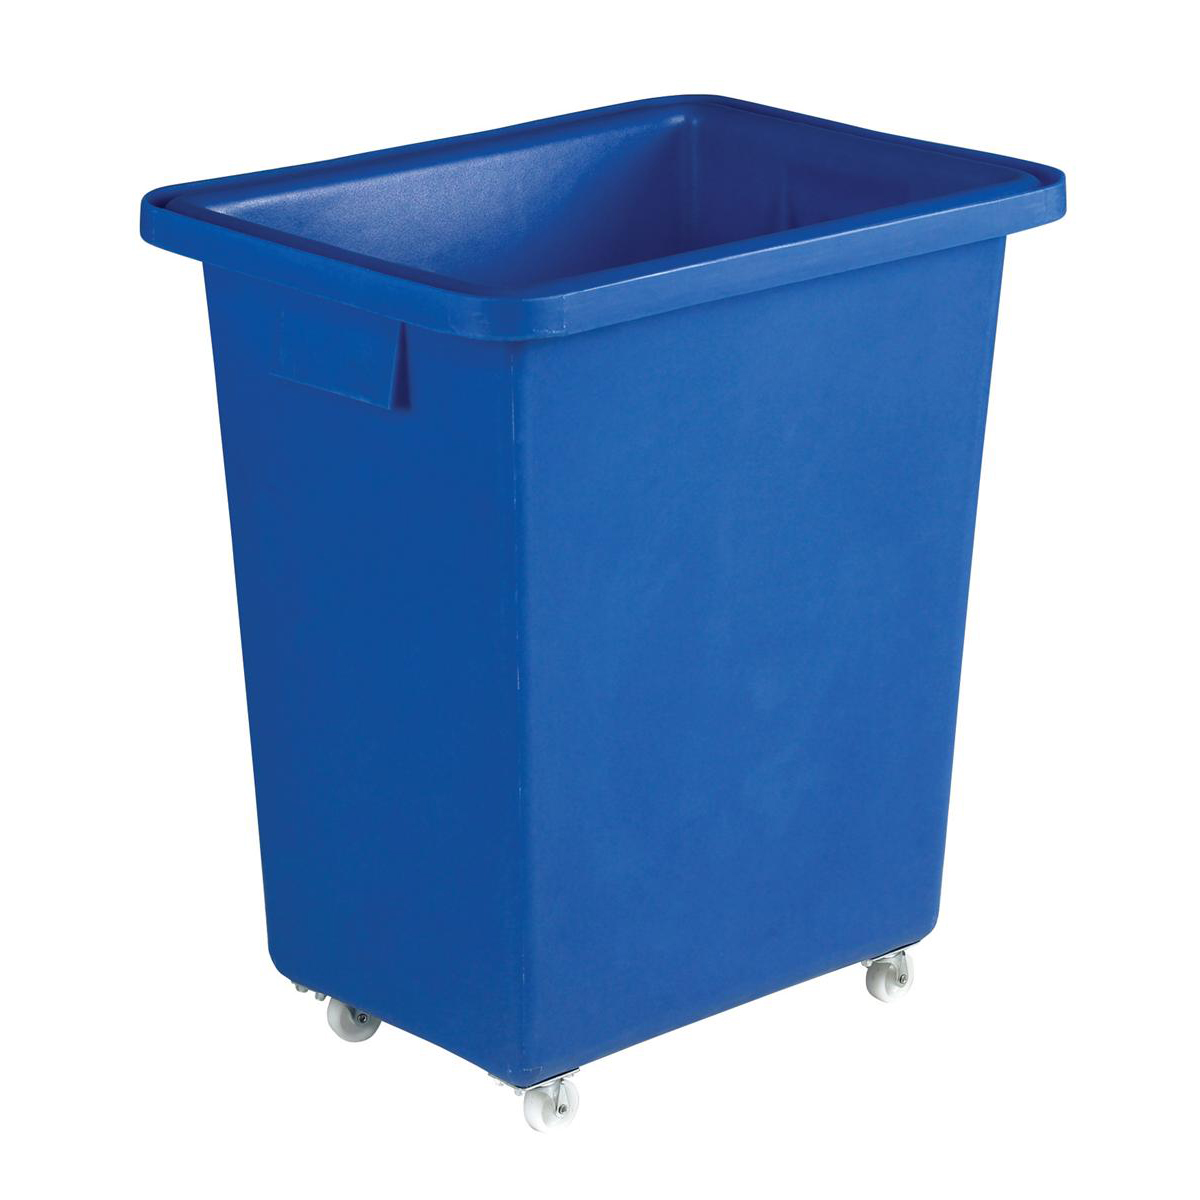 Bottle Skip Four Castors Medium Density Polyethylene 580x410x700mm Royal Blue